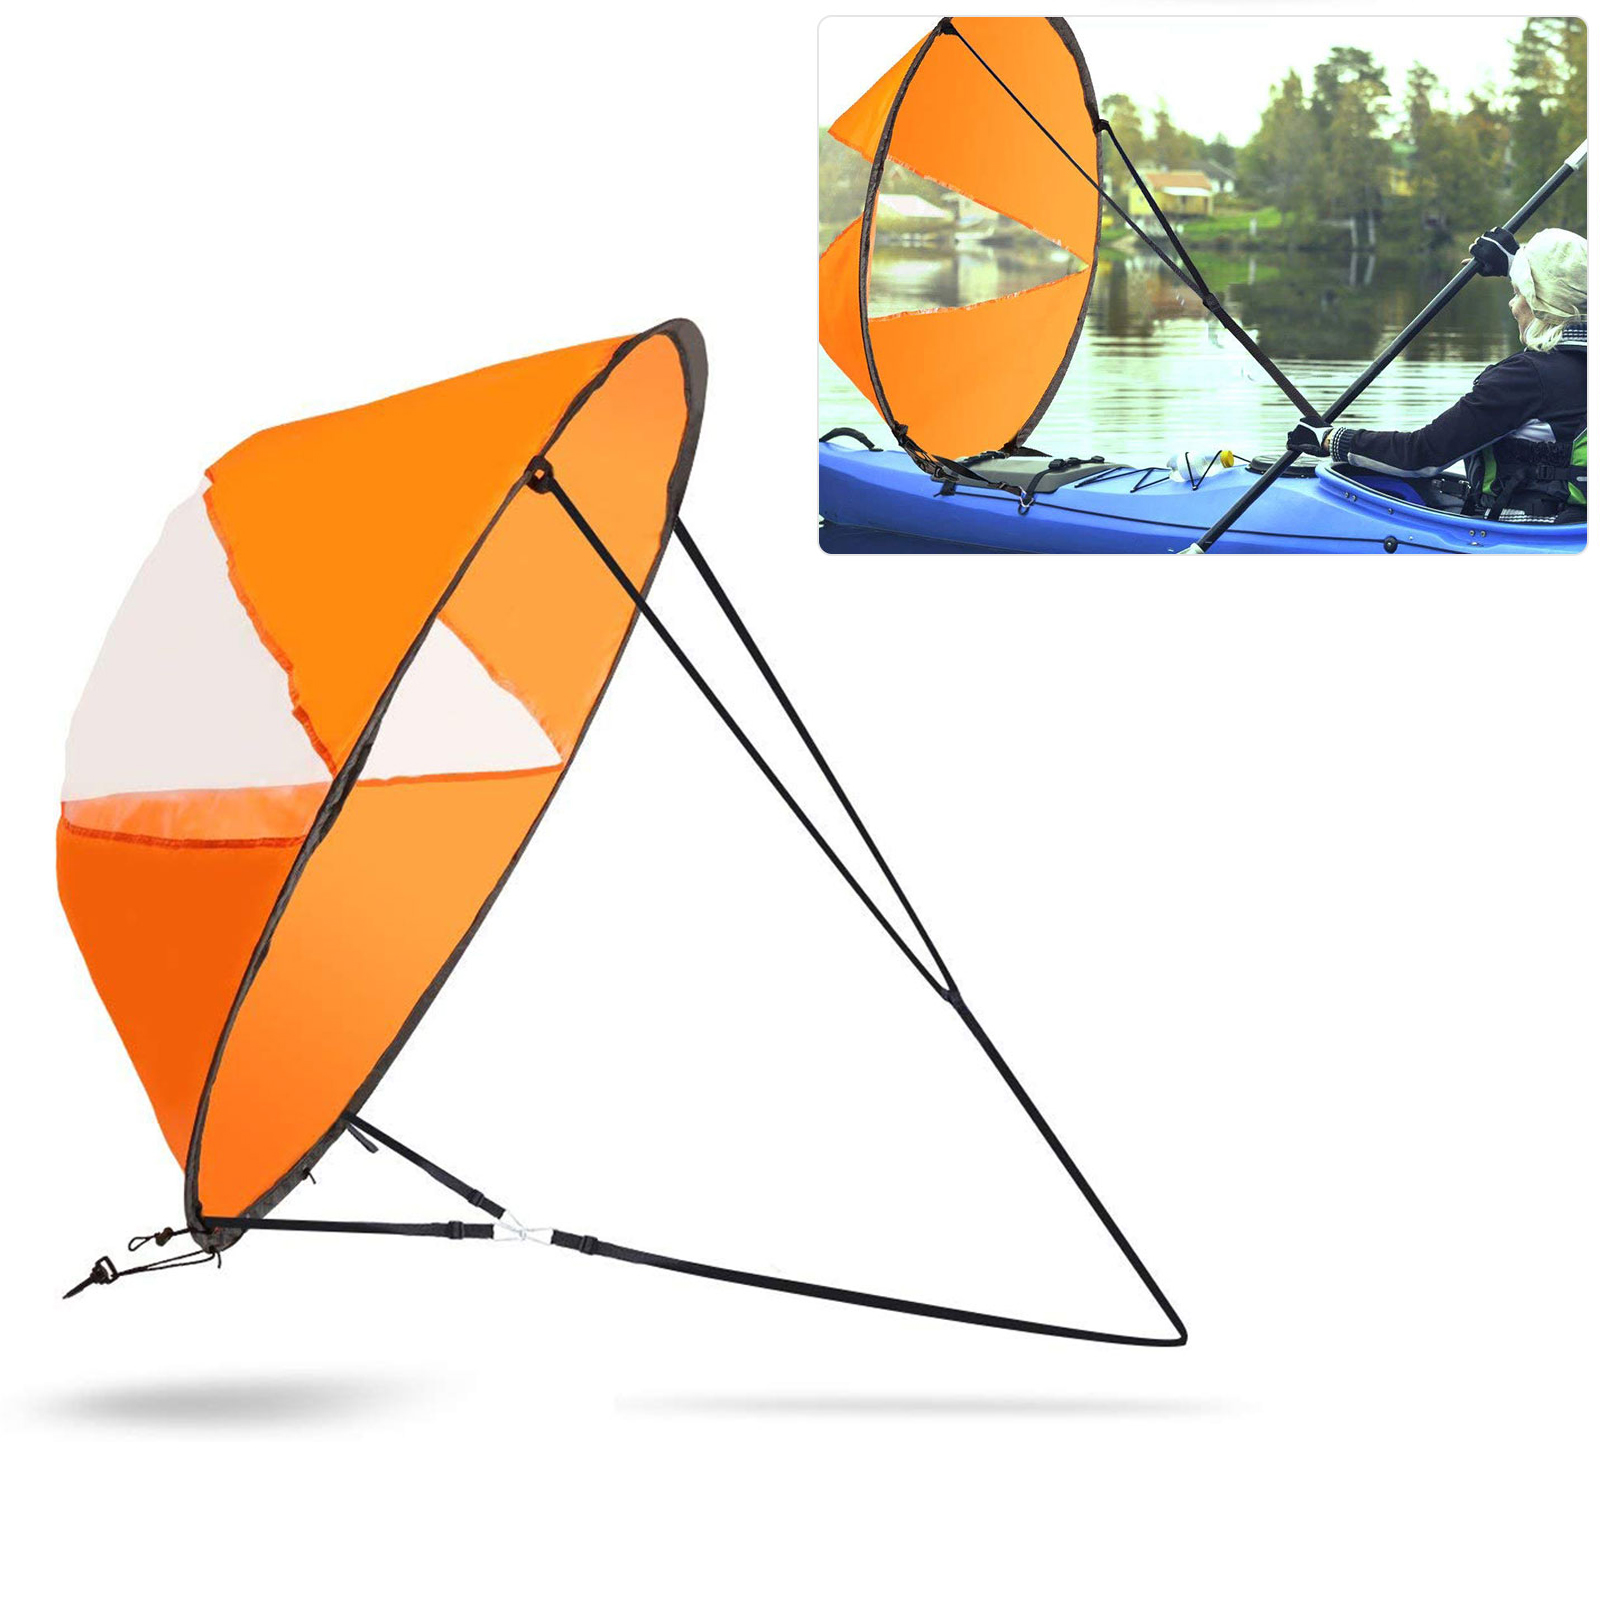 "EEEKit 42"" Kayak Boat Wind Sail, Foldable Kayak Wind Paddle Kit, Sup Sailboat Paddle Board Sailing Windpaddle Canoe Instant Sail Accessories Durable Surfing Portable"